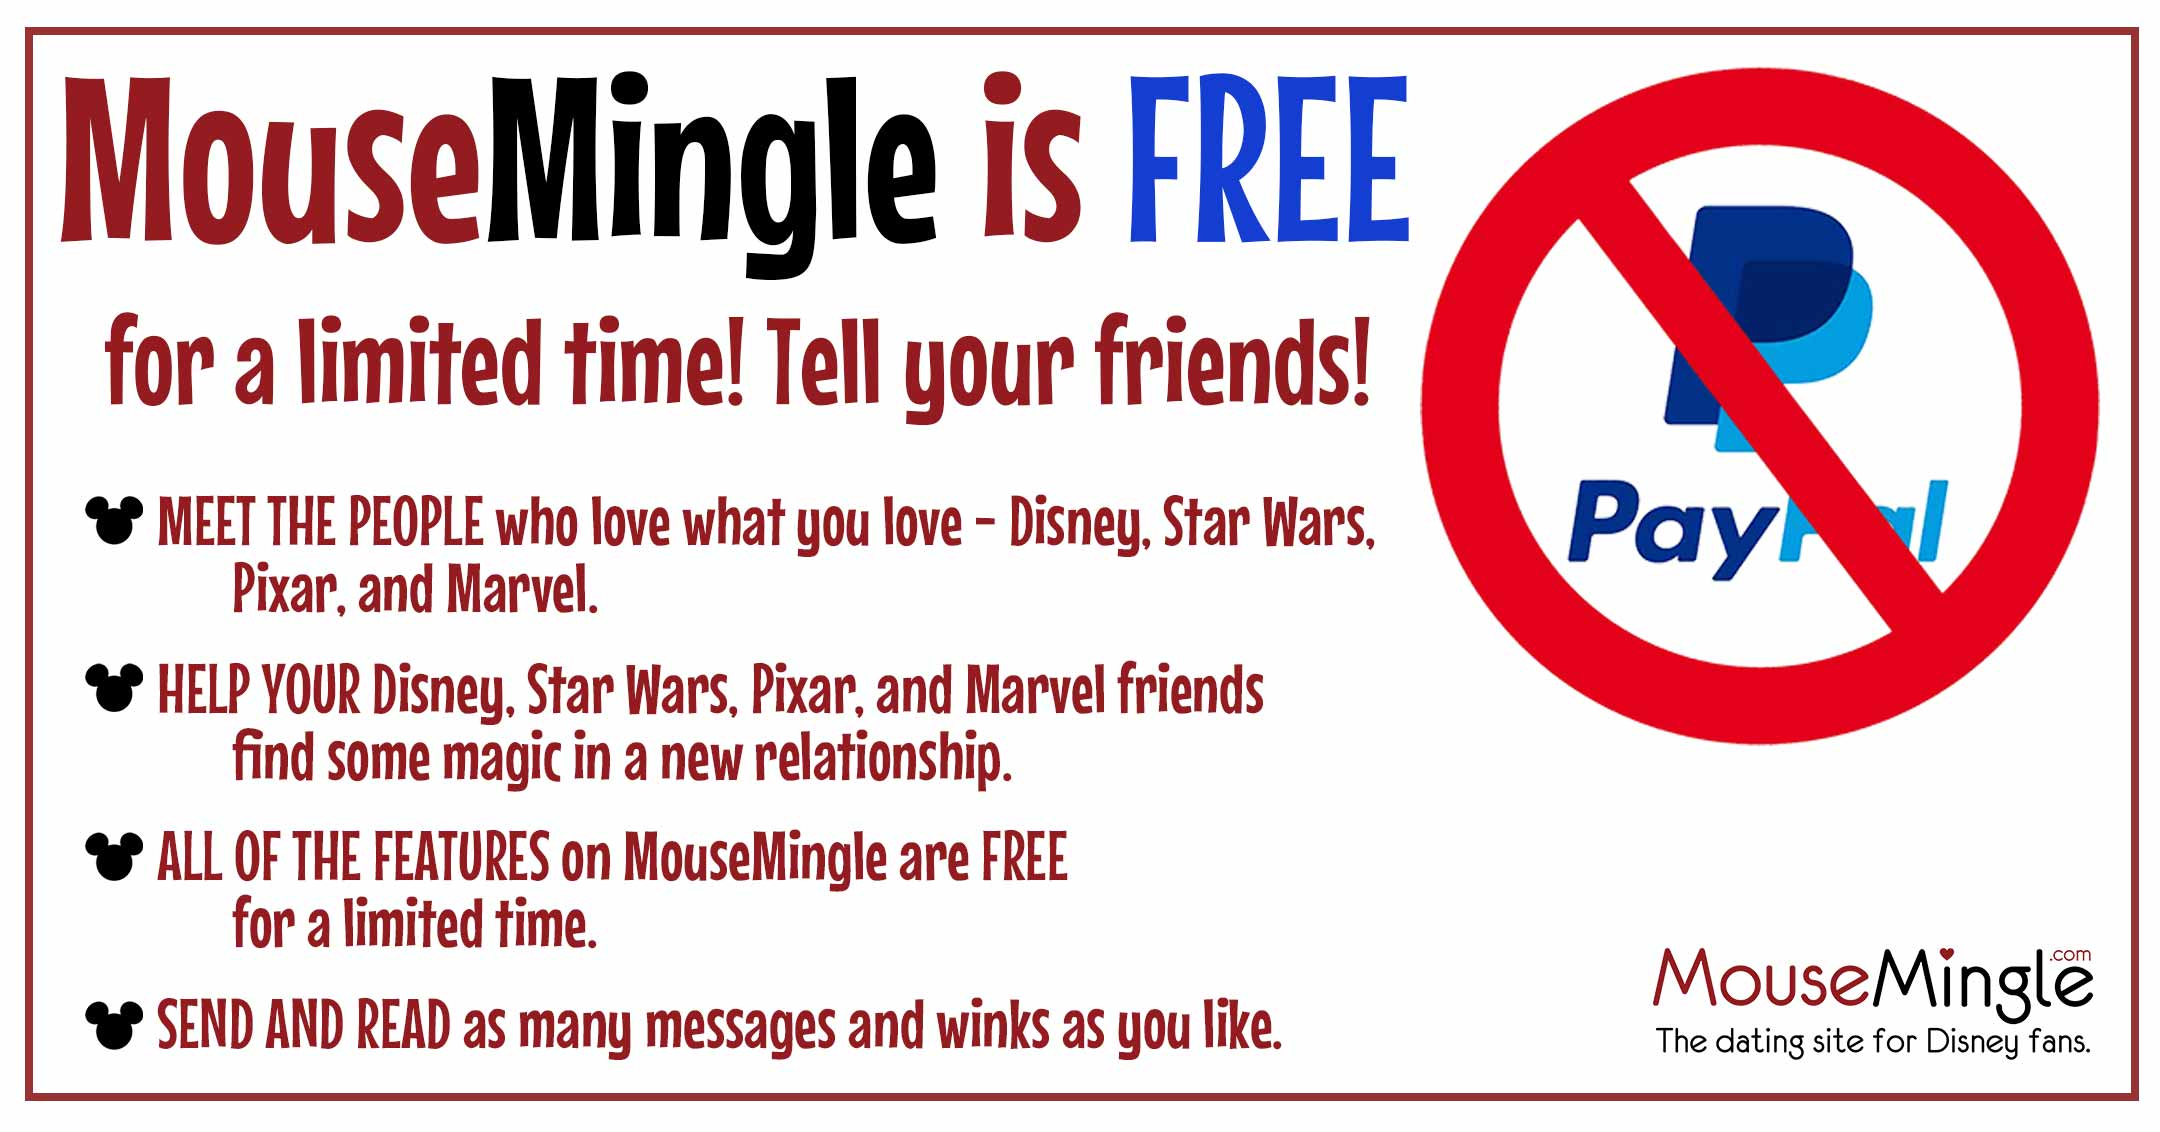 MouseMingle is Free for A Limited Time!